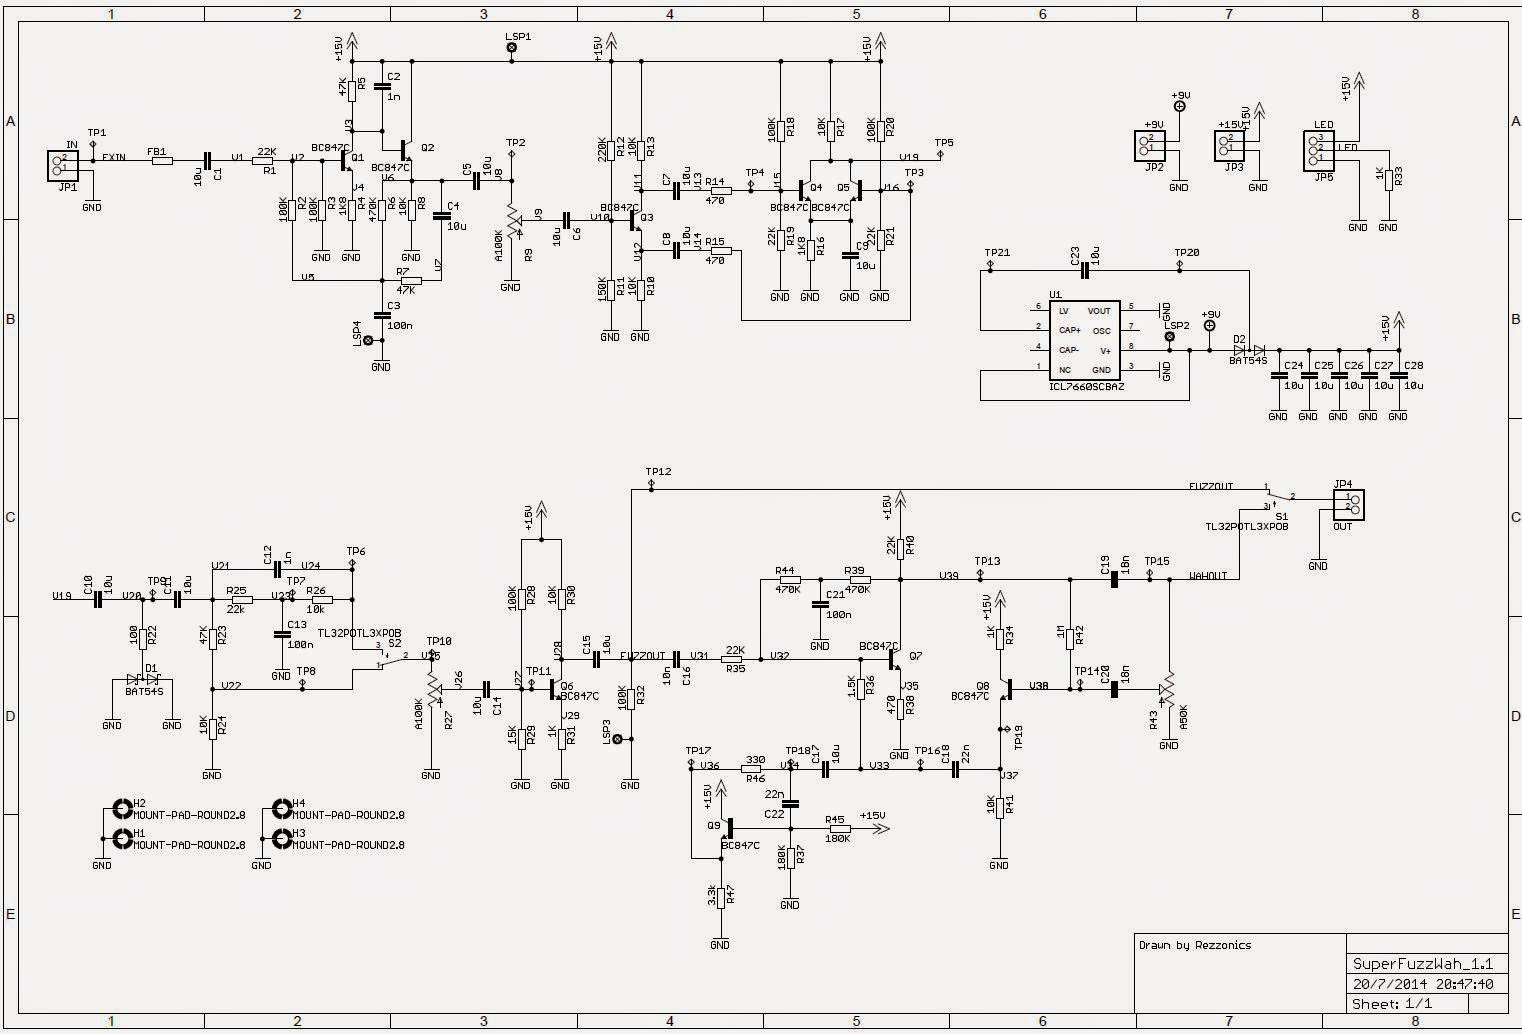 SuperFuzz_1.1.sch Univox Super Fuzz Wiring Diagram on gmc fuse box diagrams, battery diagrams, troubleshooting diagrams, electrical diagrams, series and parallel circuits diagrams, transformer diagrams, smart car diagrams, motor diagrams, led circuit diagrams, lighting diagrams, friendship bracelet diagrams, hvac diagrams, electronic circuit diagrams, switch diagrams, honda motorcycle repair diagrams, pinout diagrams, internet of things diagrams, sincgars radio configurations diagrams, engine diagrams,